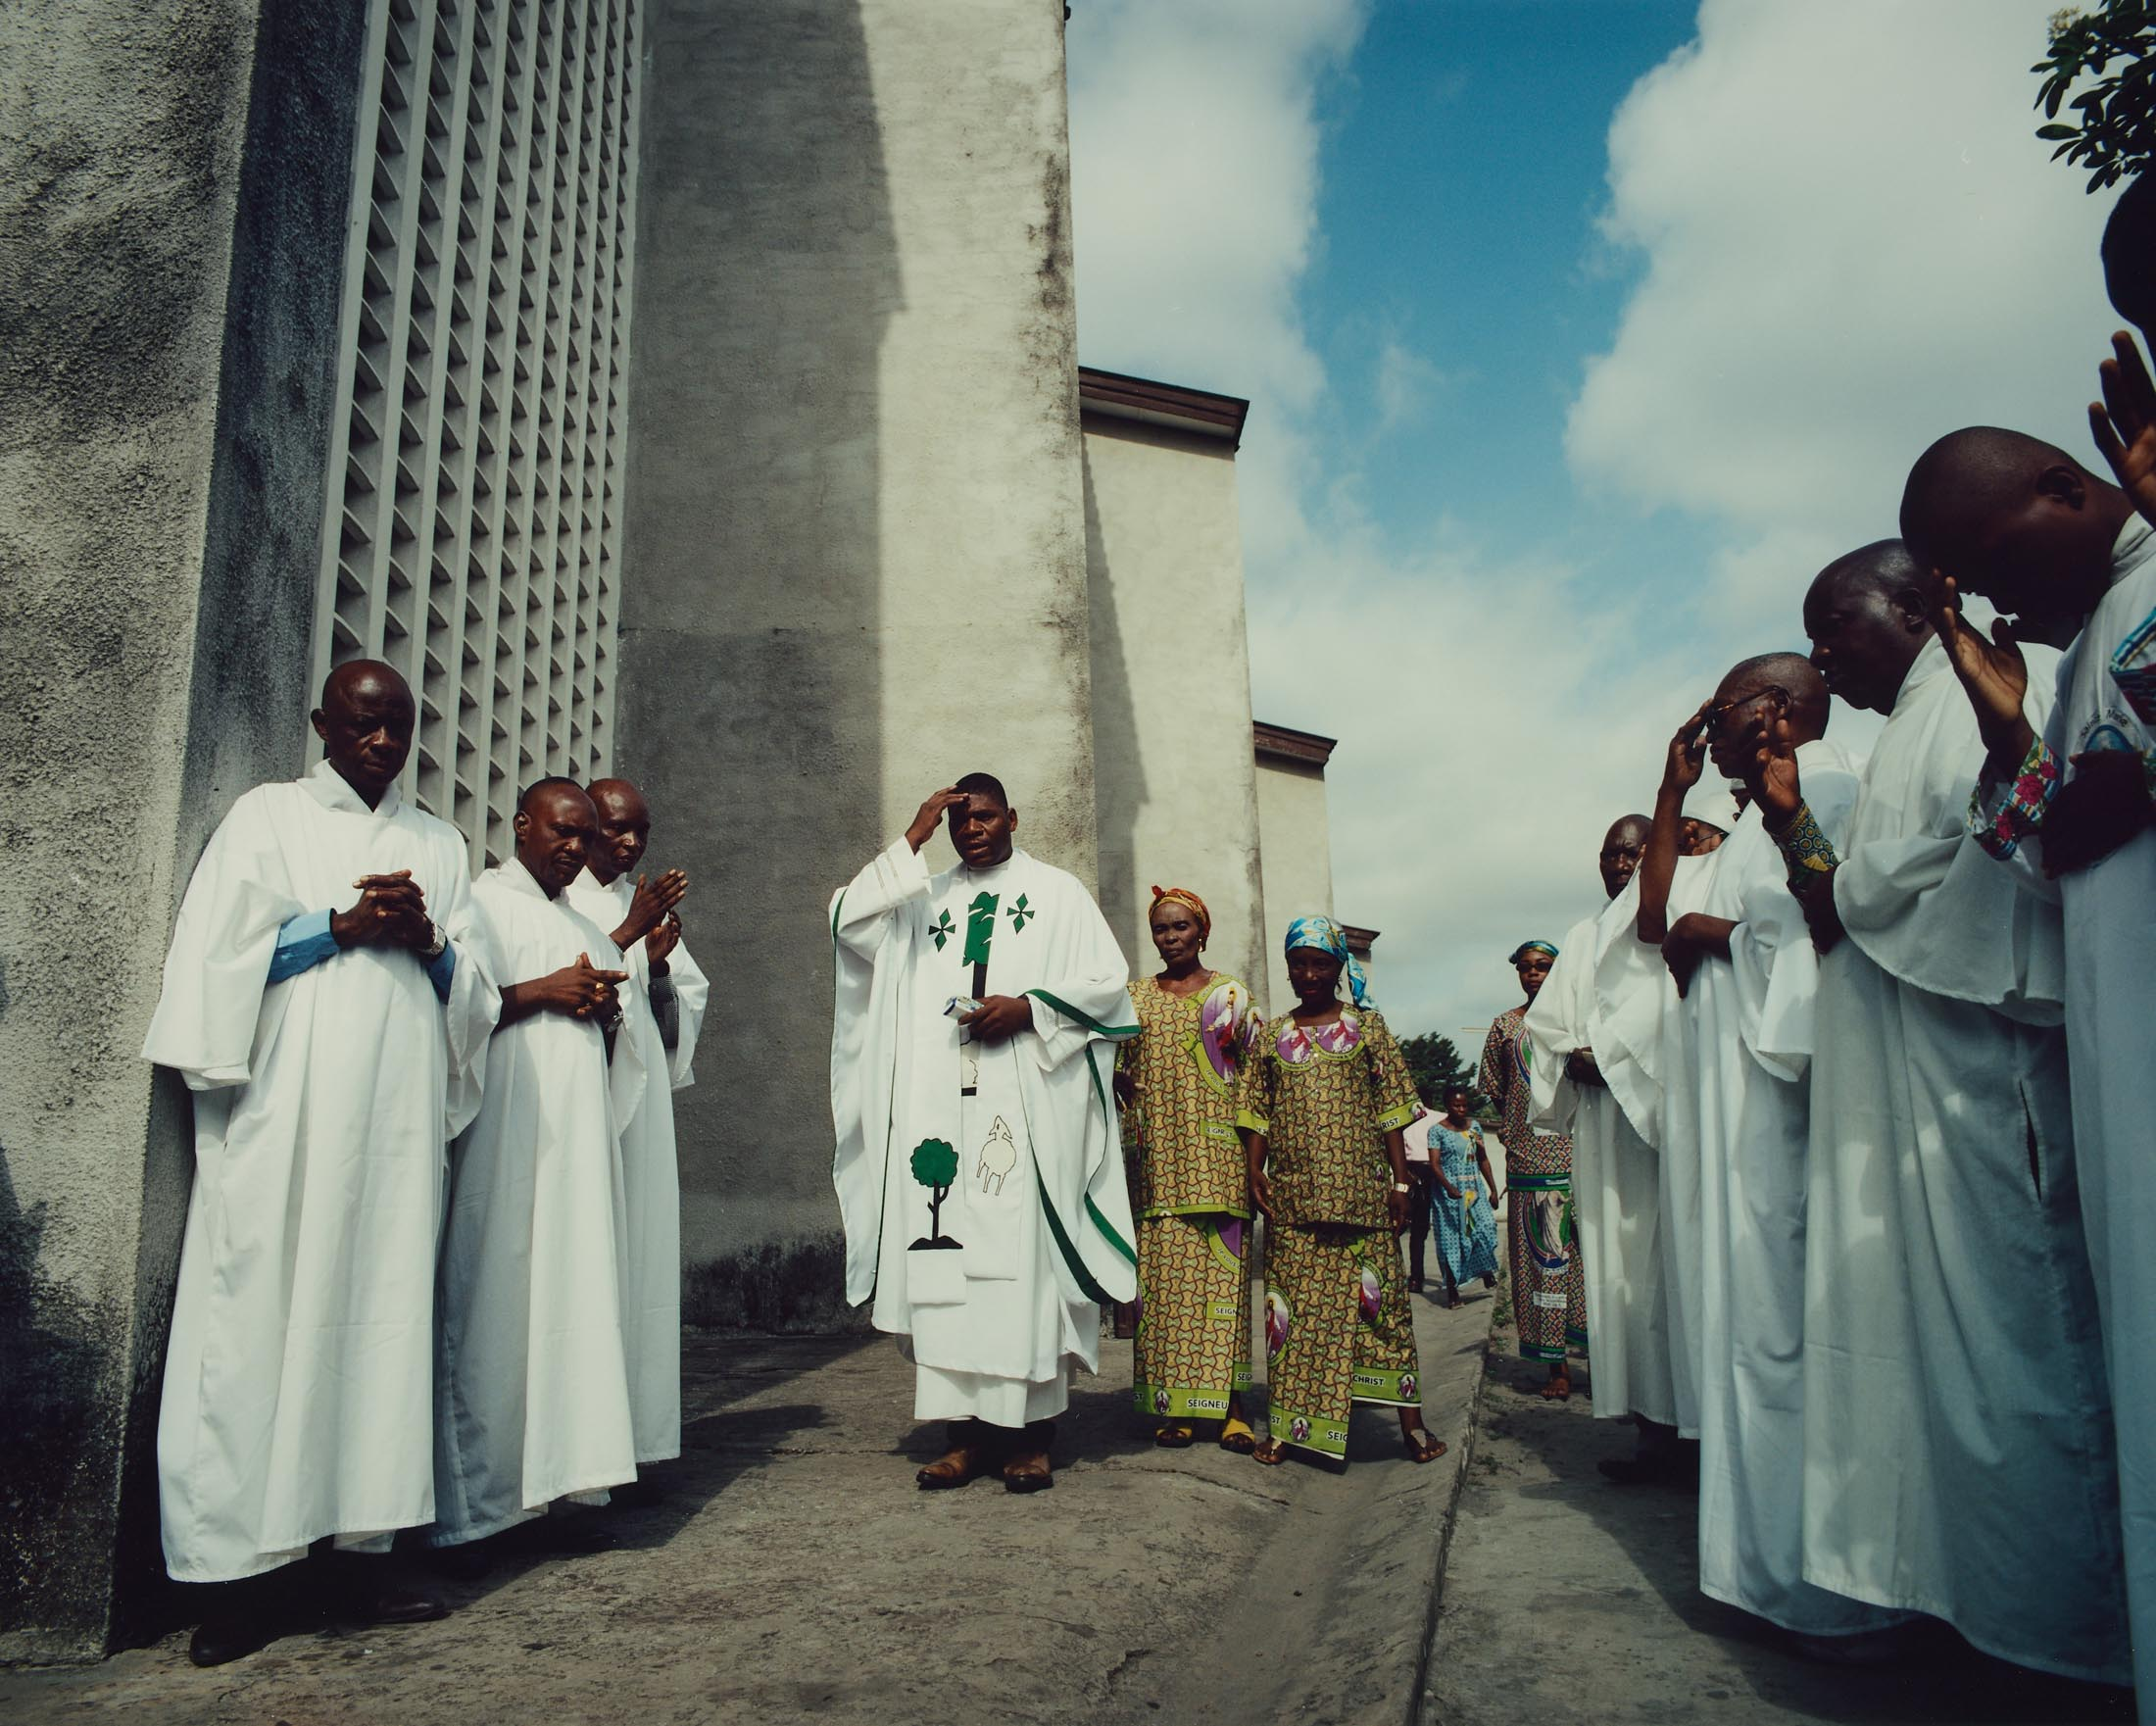 """Abbé Ponde leads a prayer after service at St. Augustin, Lemba, Kinshasa. """" We must see the social conditions of the population change. We need a peaceful life, without trouble. We want people to live freely""""."""